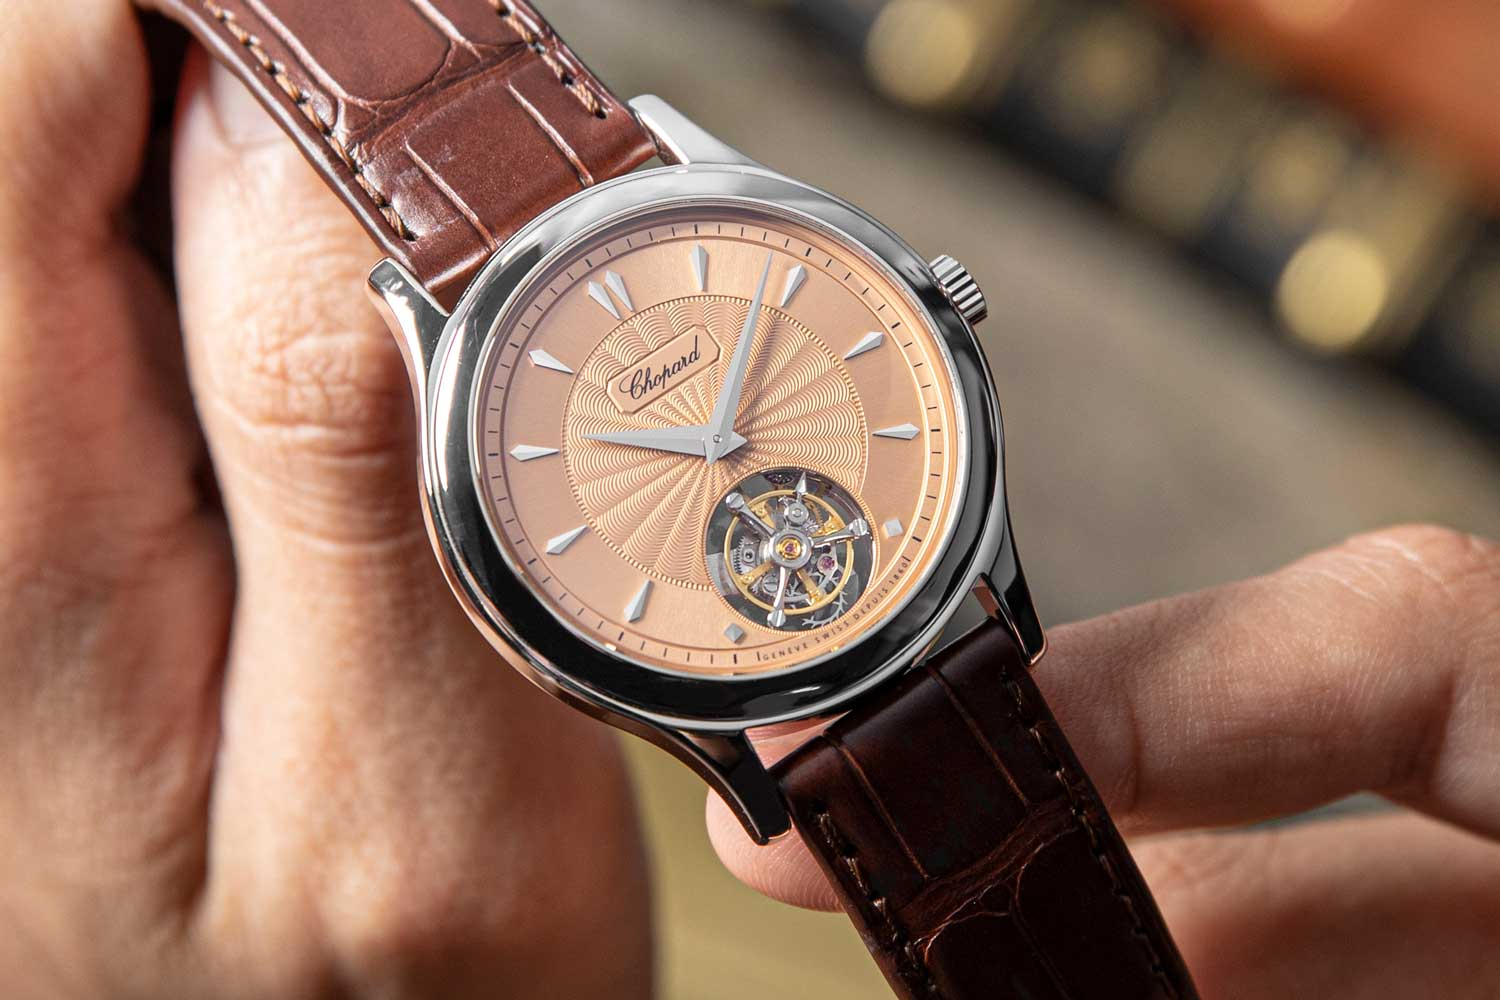 In our opinion the COSC-certified and Geneva Seal bearing Chopard L.U.C 1860 Flying T, Special Revolution is thusly a chronometric masterpiece (©Revolution)